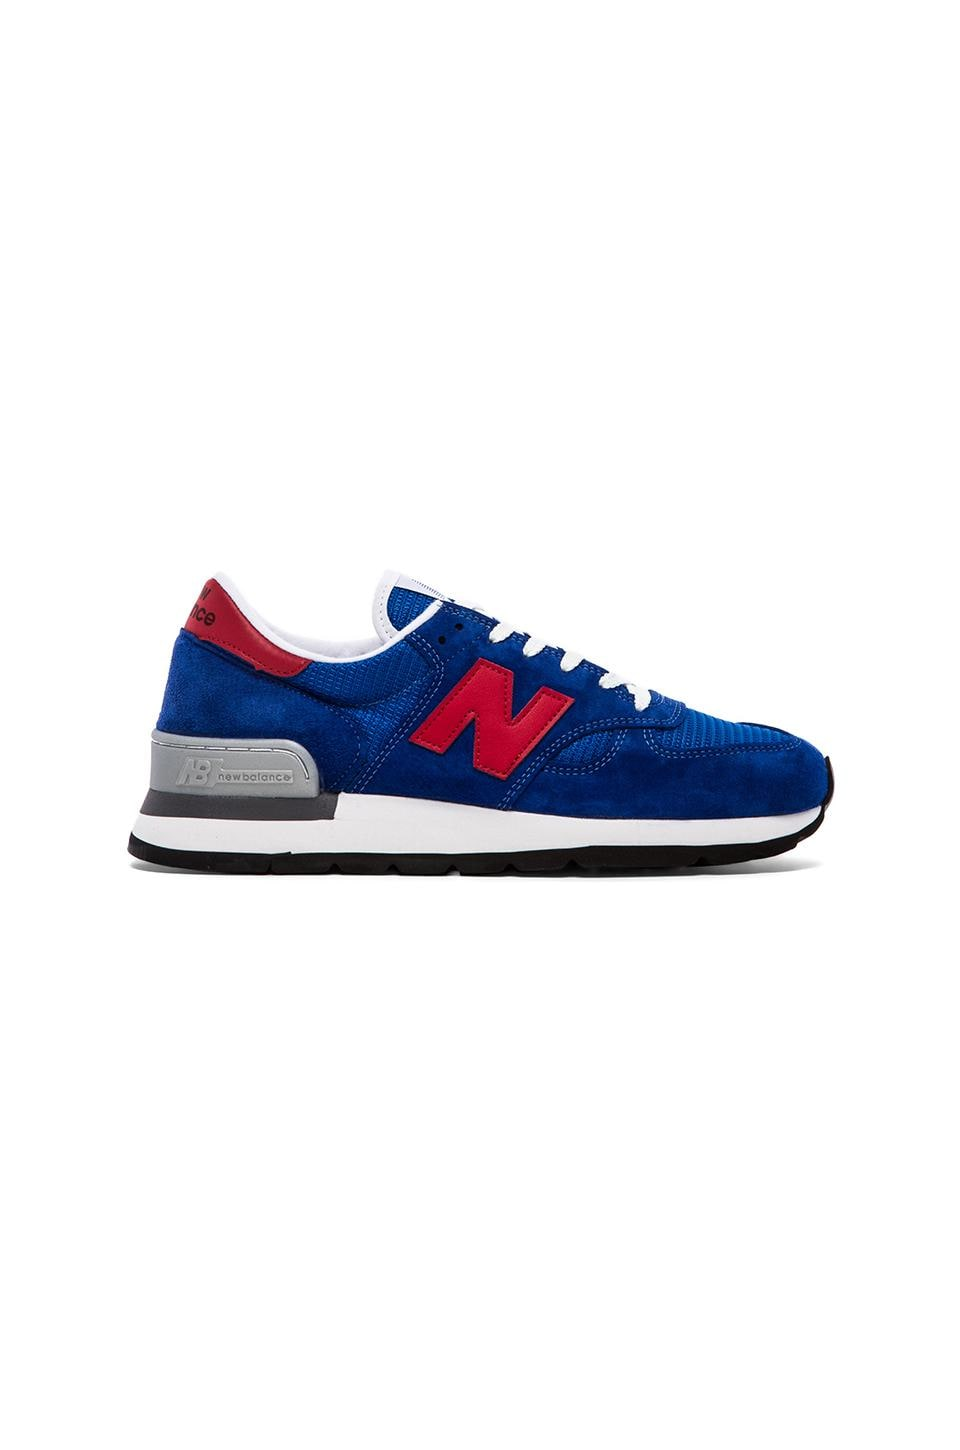 New Balance Made in USA M990 in Blue Suede